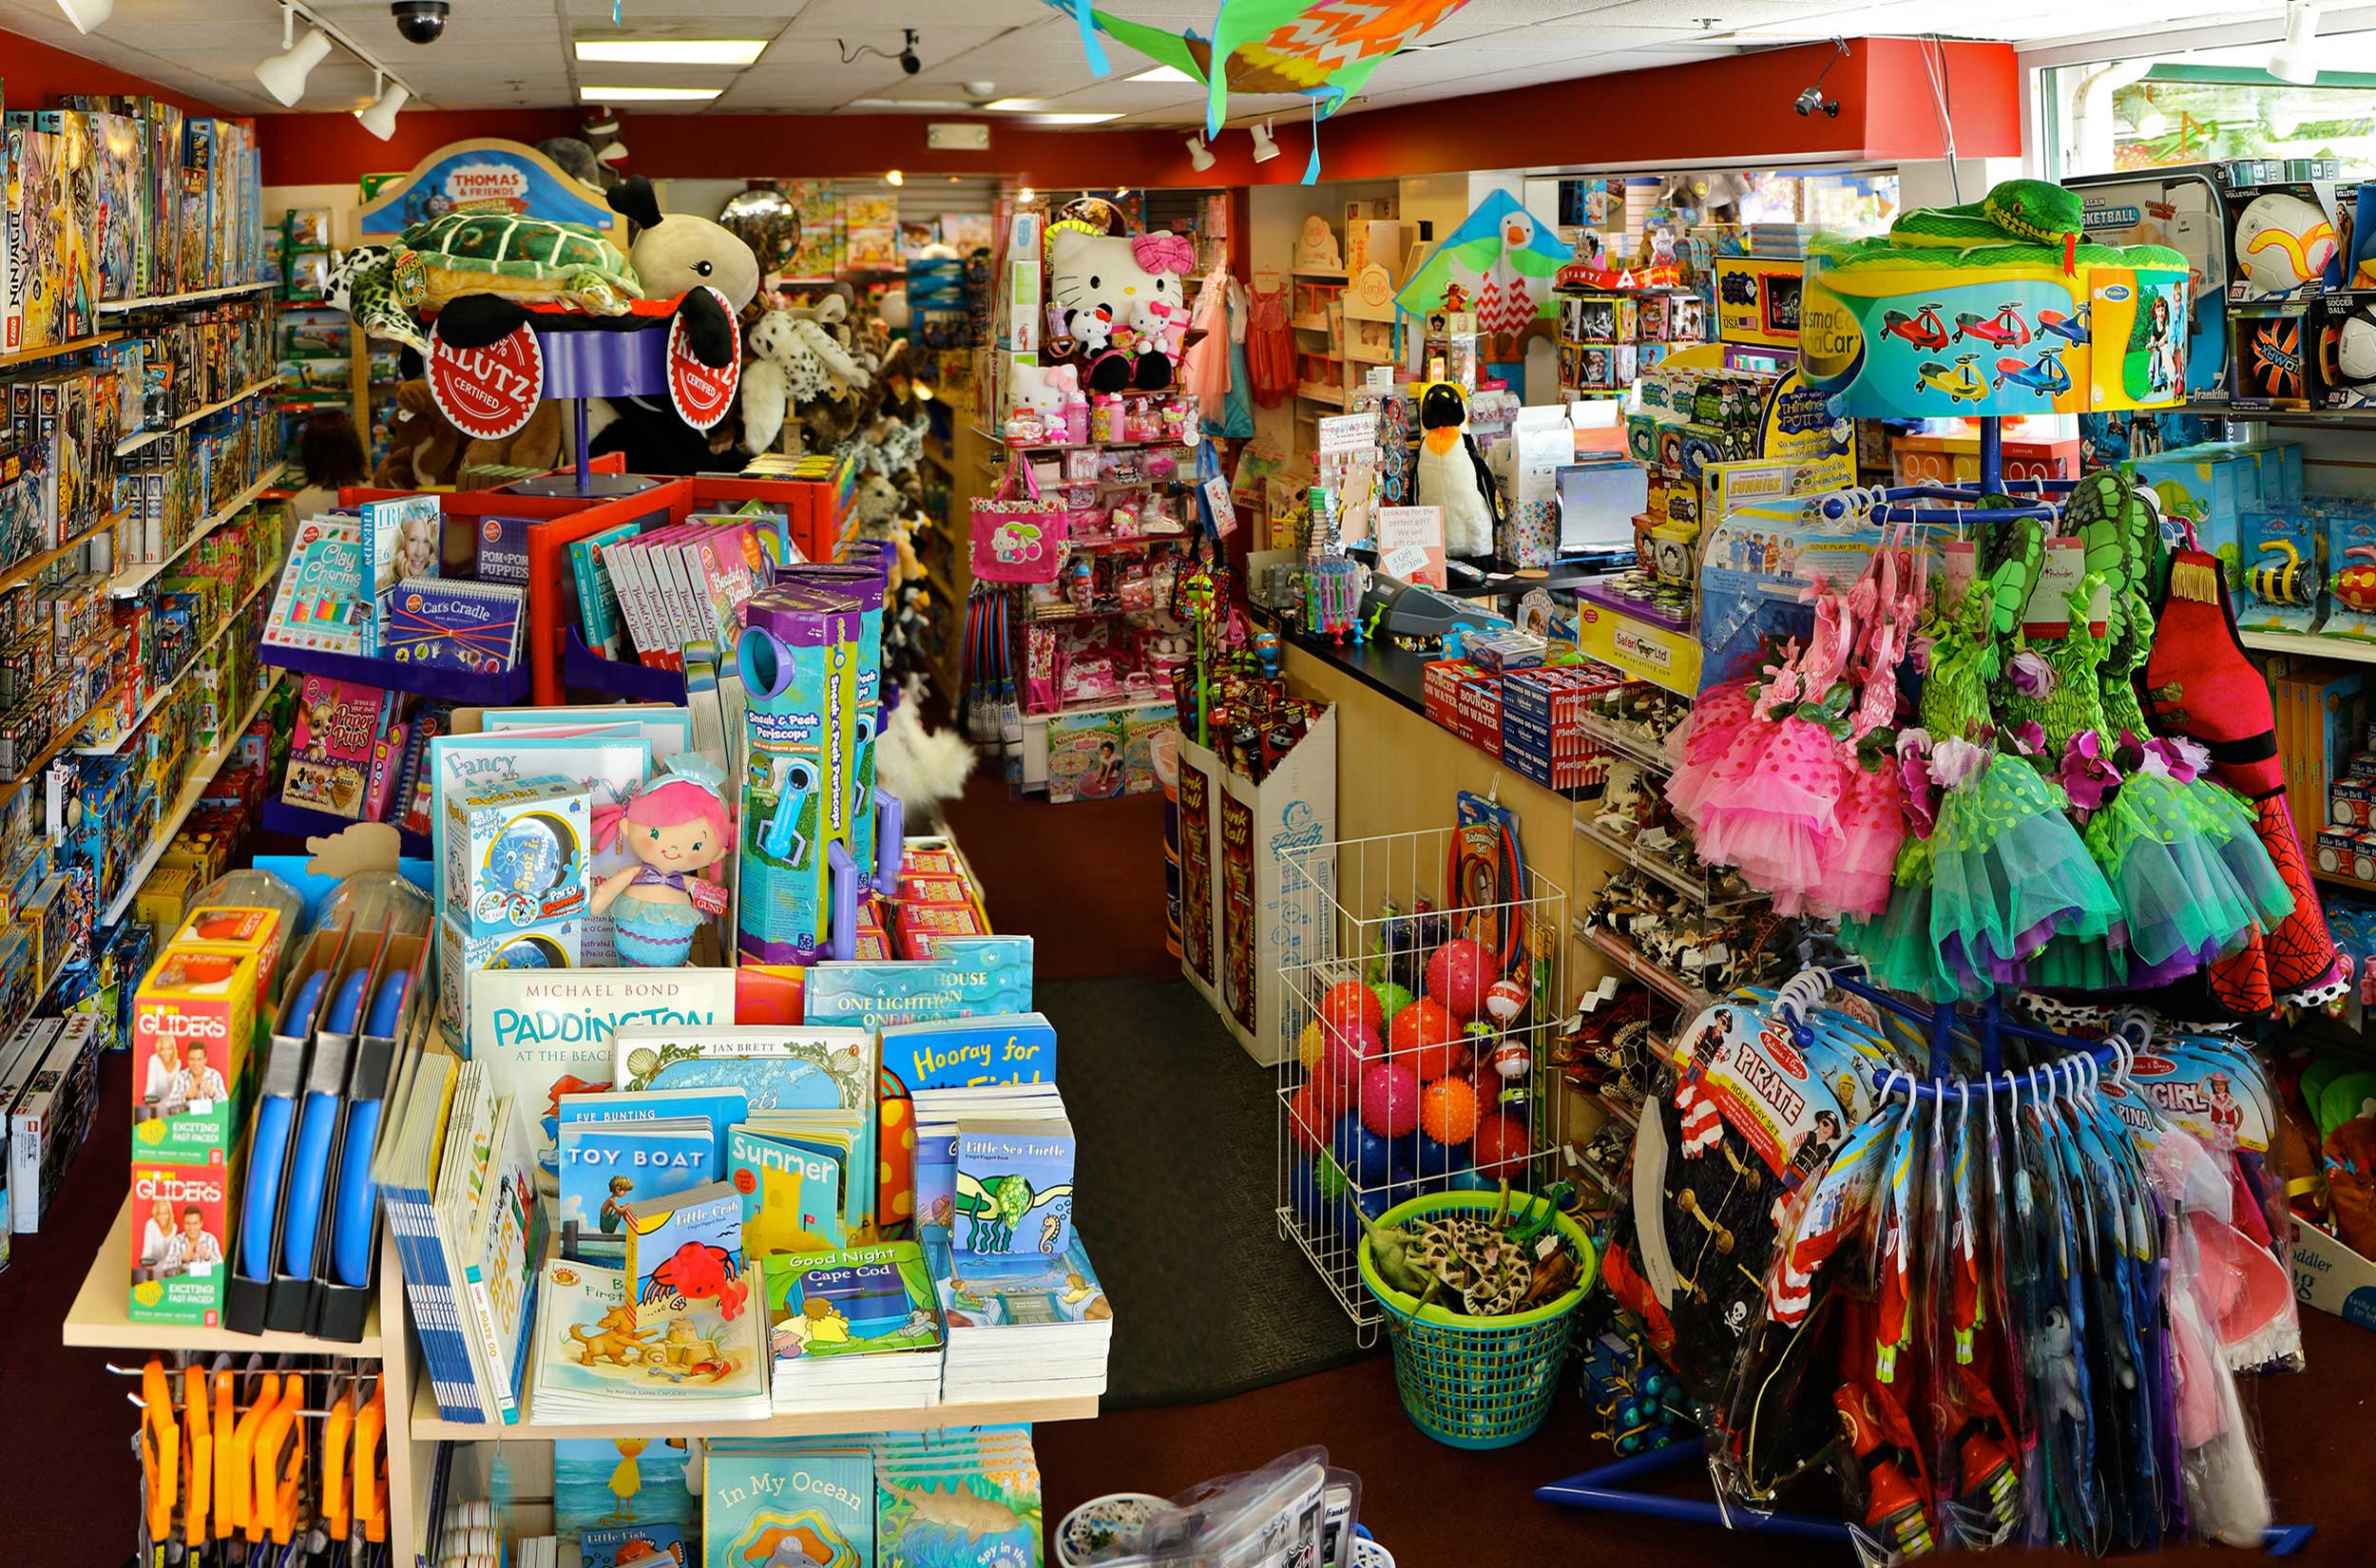 The-Red-Balloon-Toy-Shop-Mashpee-Cape-Cod-Toys.jpg